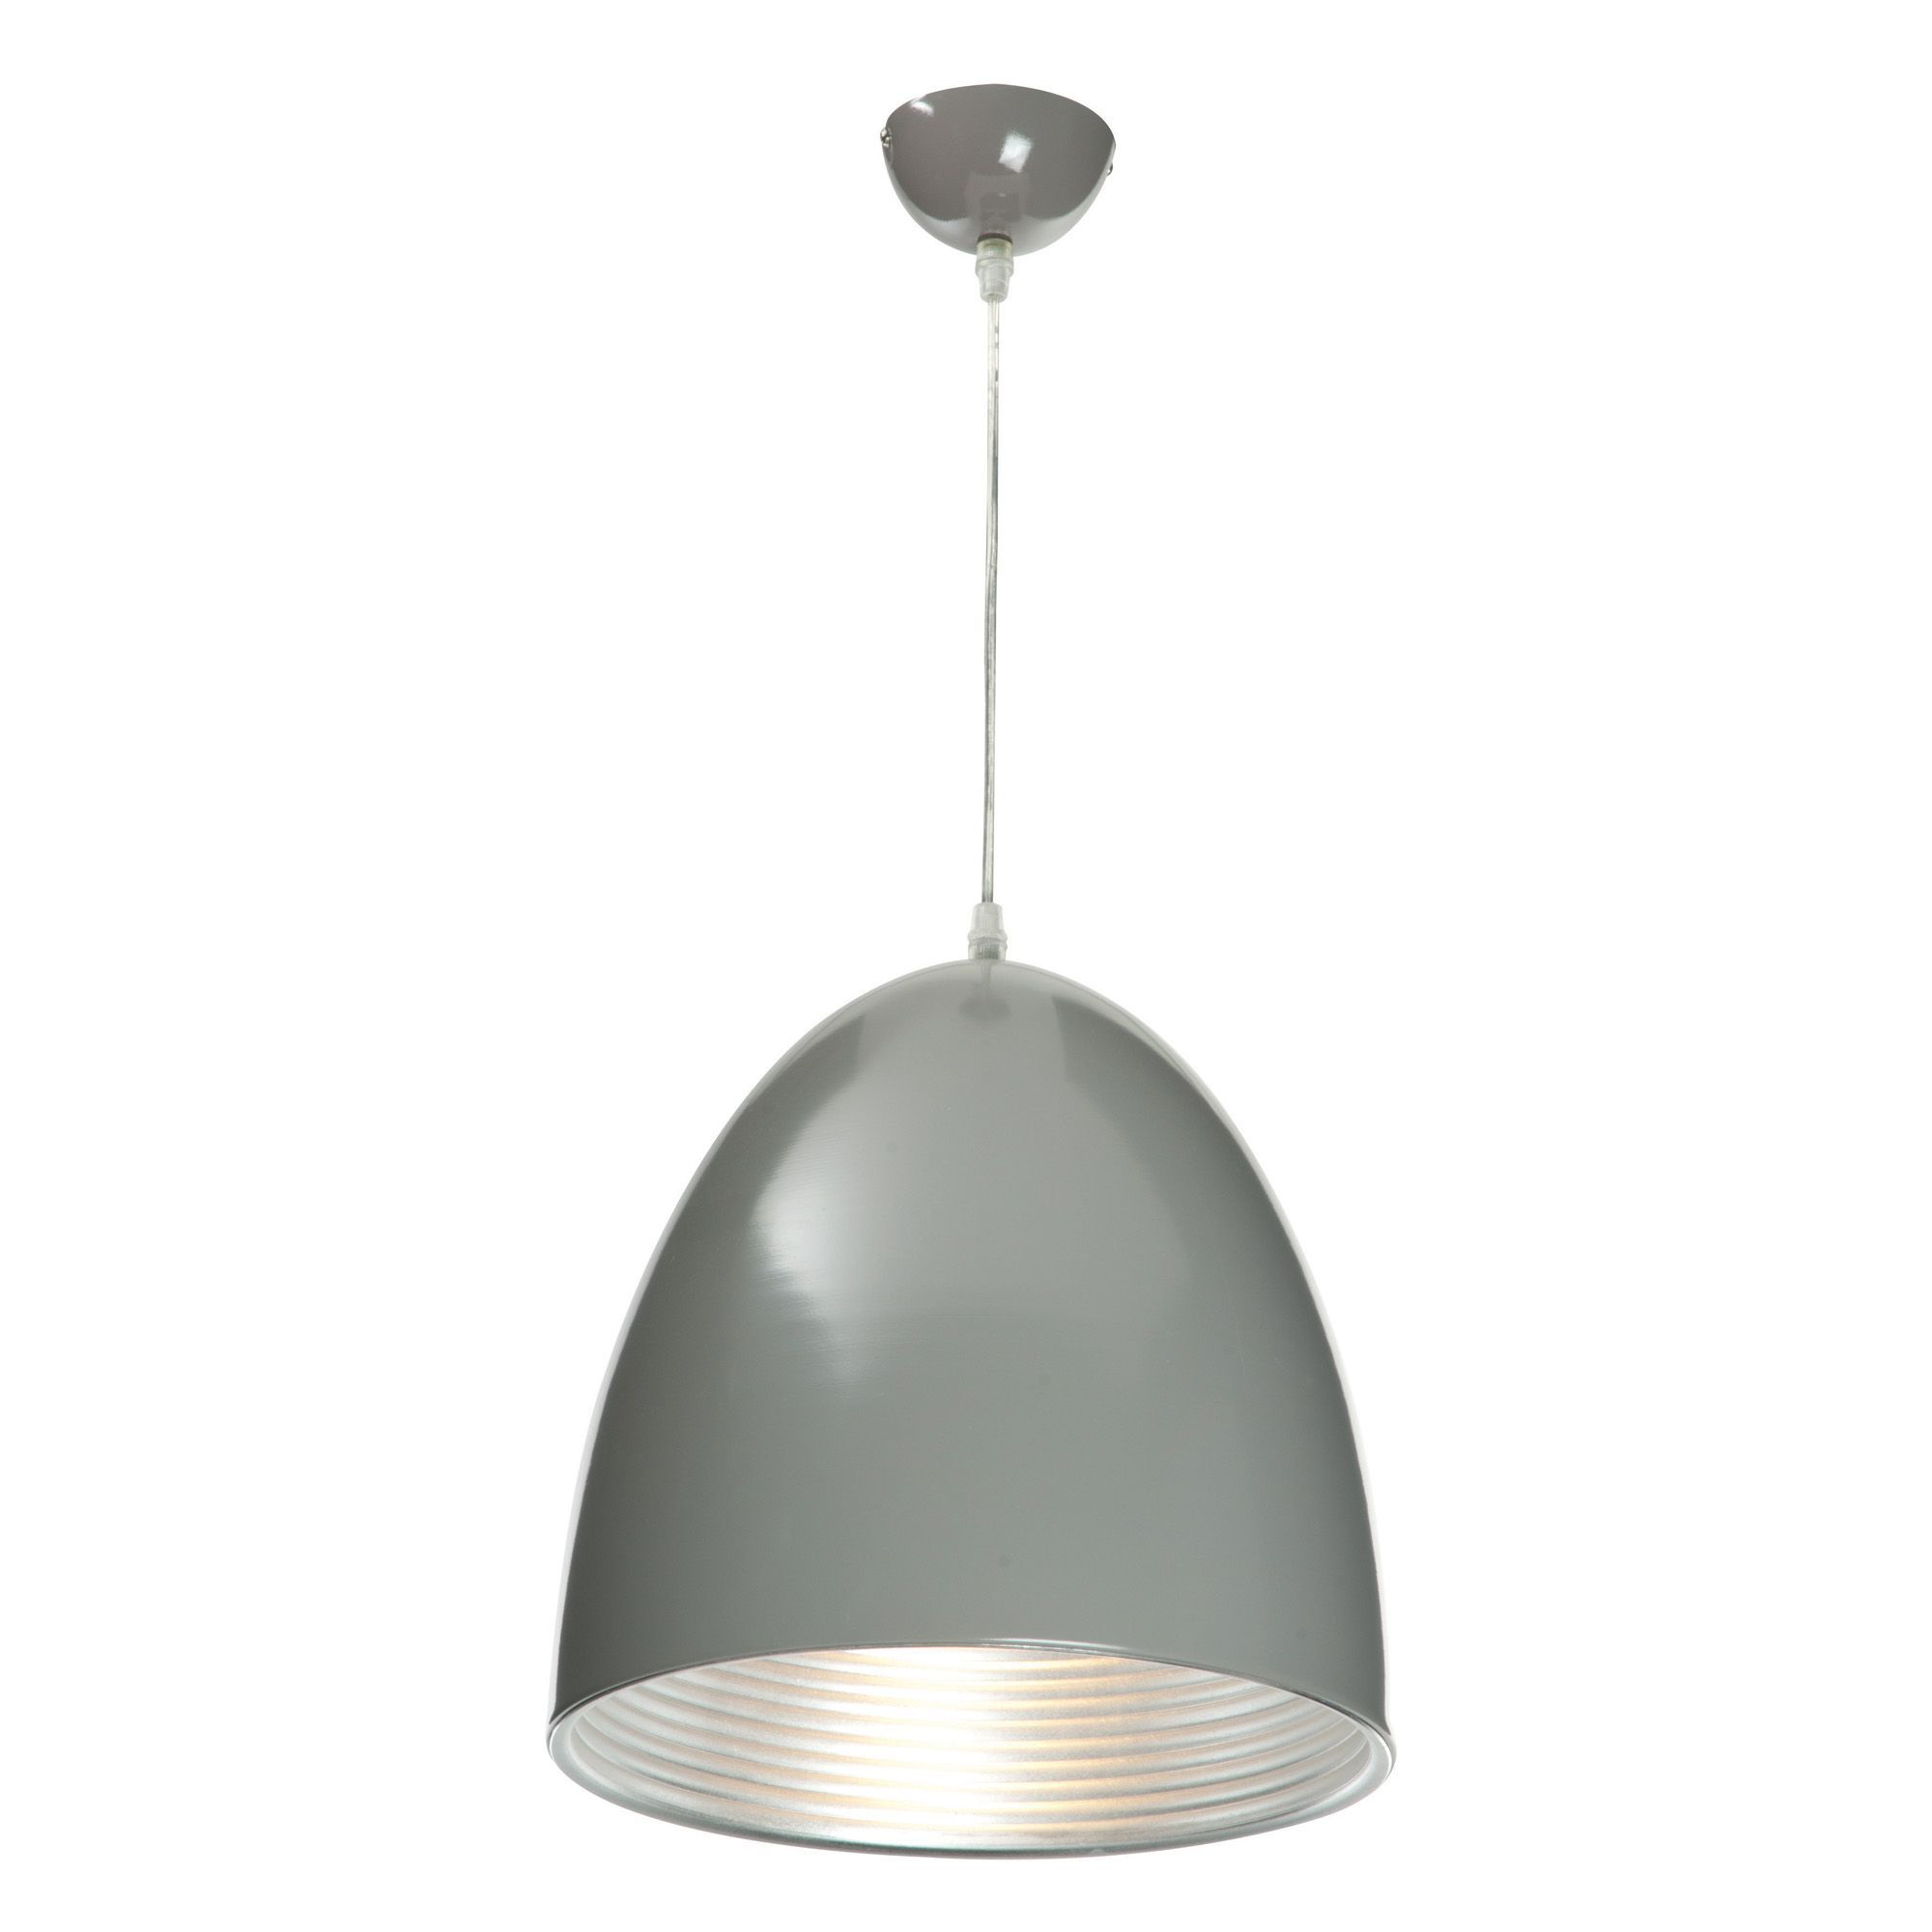 Outdoor Ceiling Lights B And Q : Ripple grey pendant ceiling light departments diy at b q